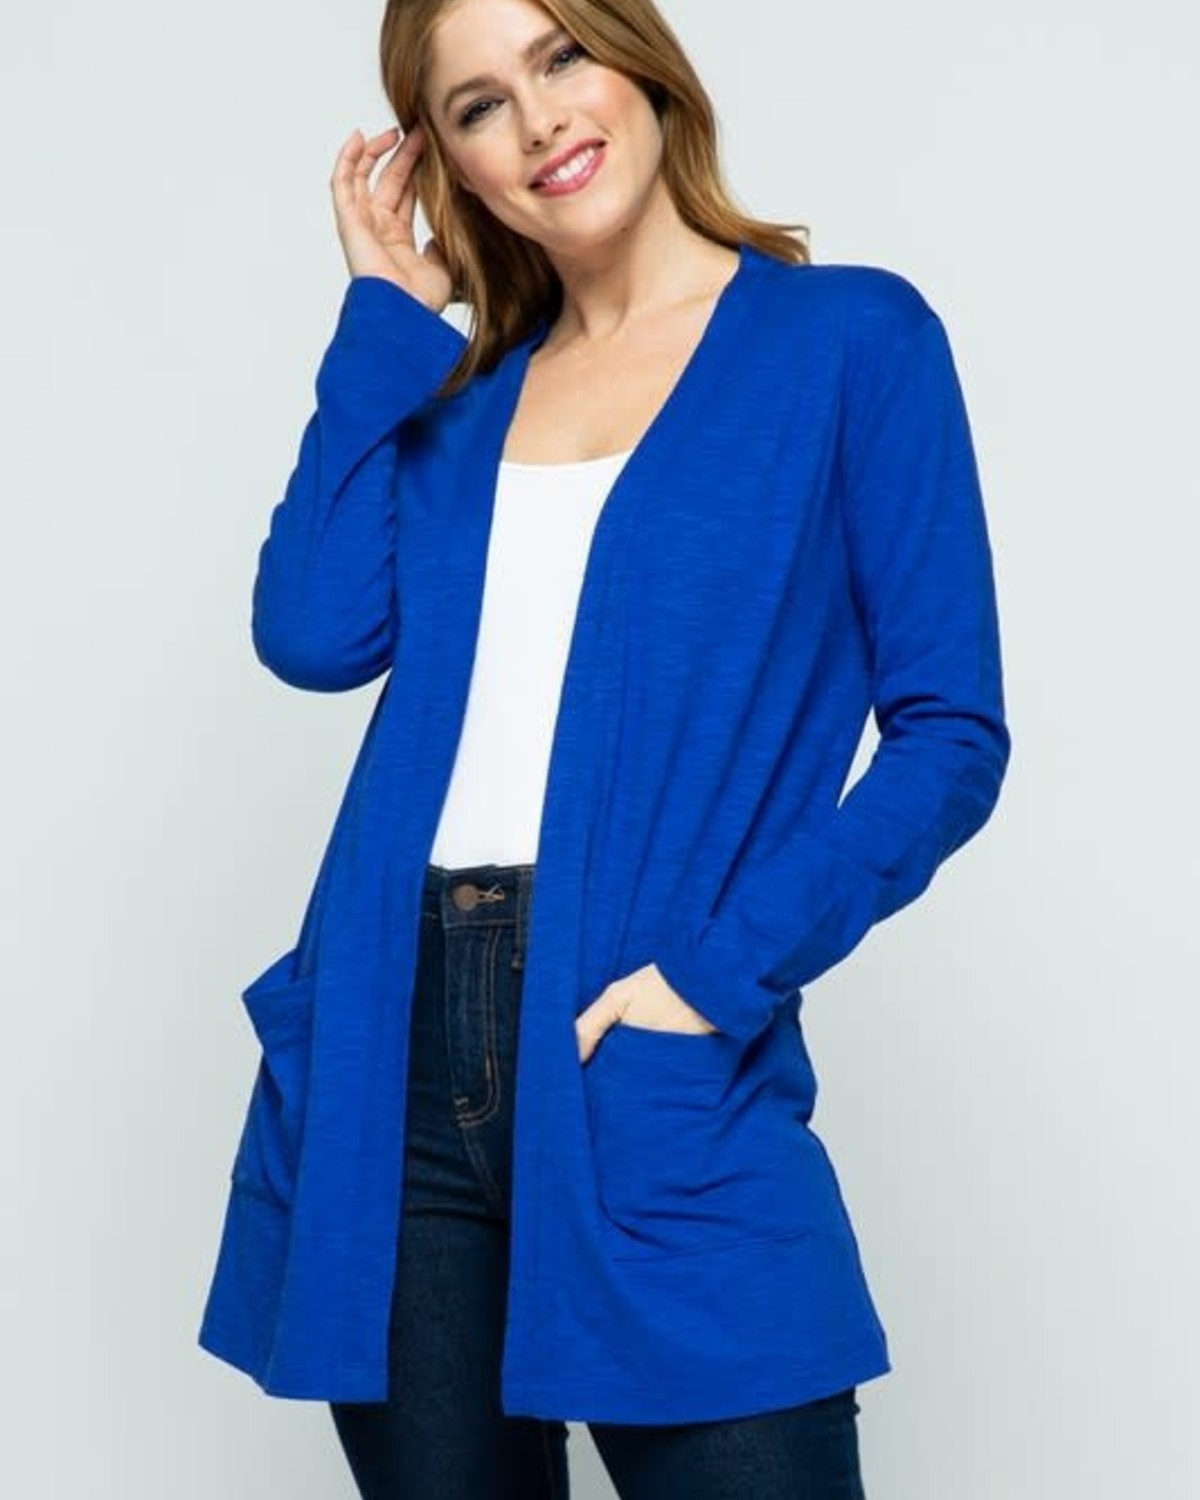 Blue Groto Open Front Knit Cardigan